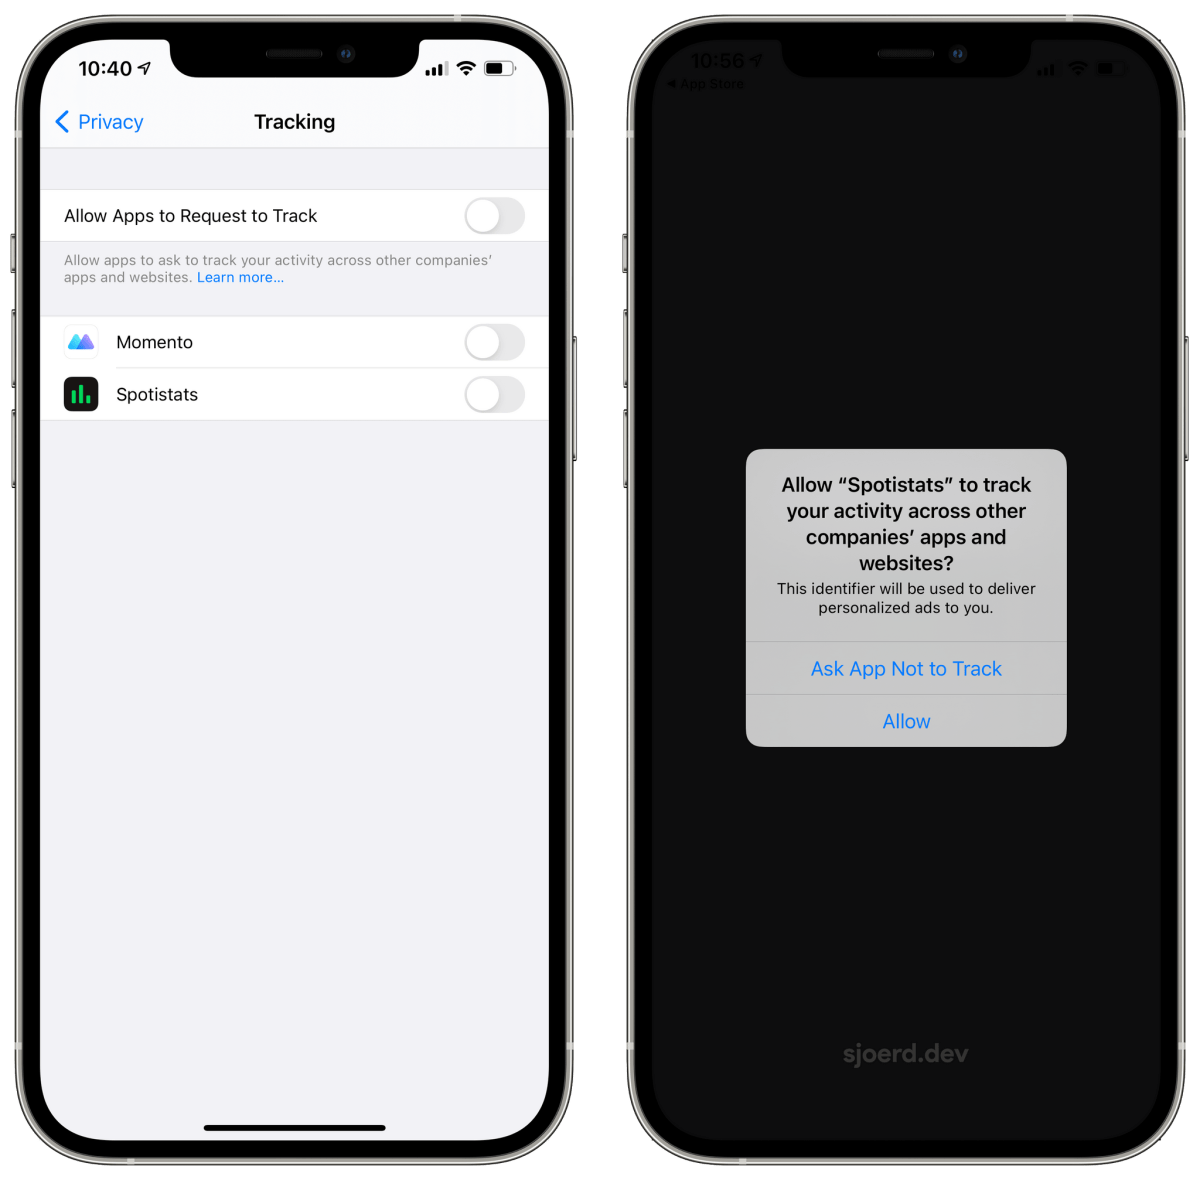 The new Tracking settings and prompt in iOS 14.5.